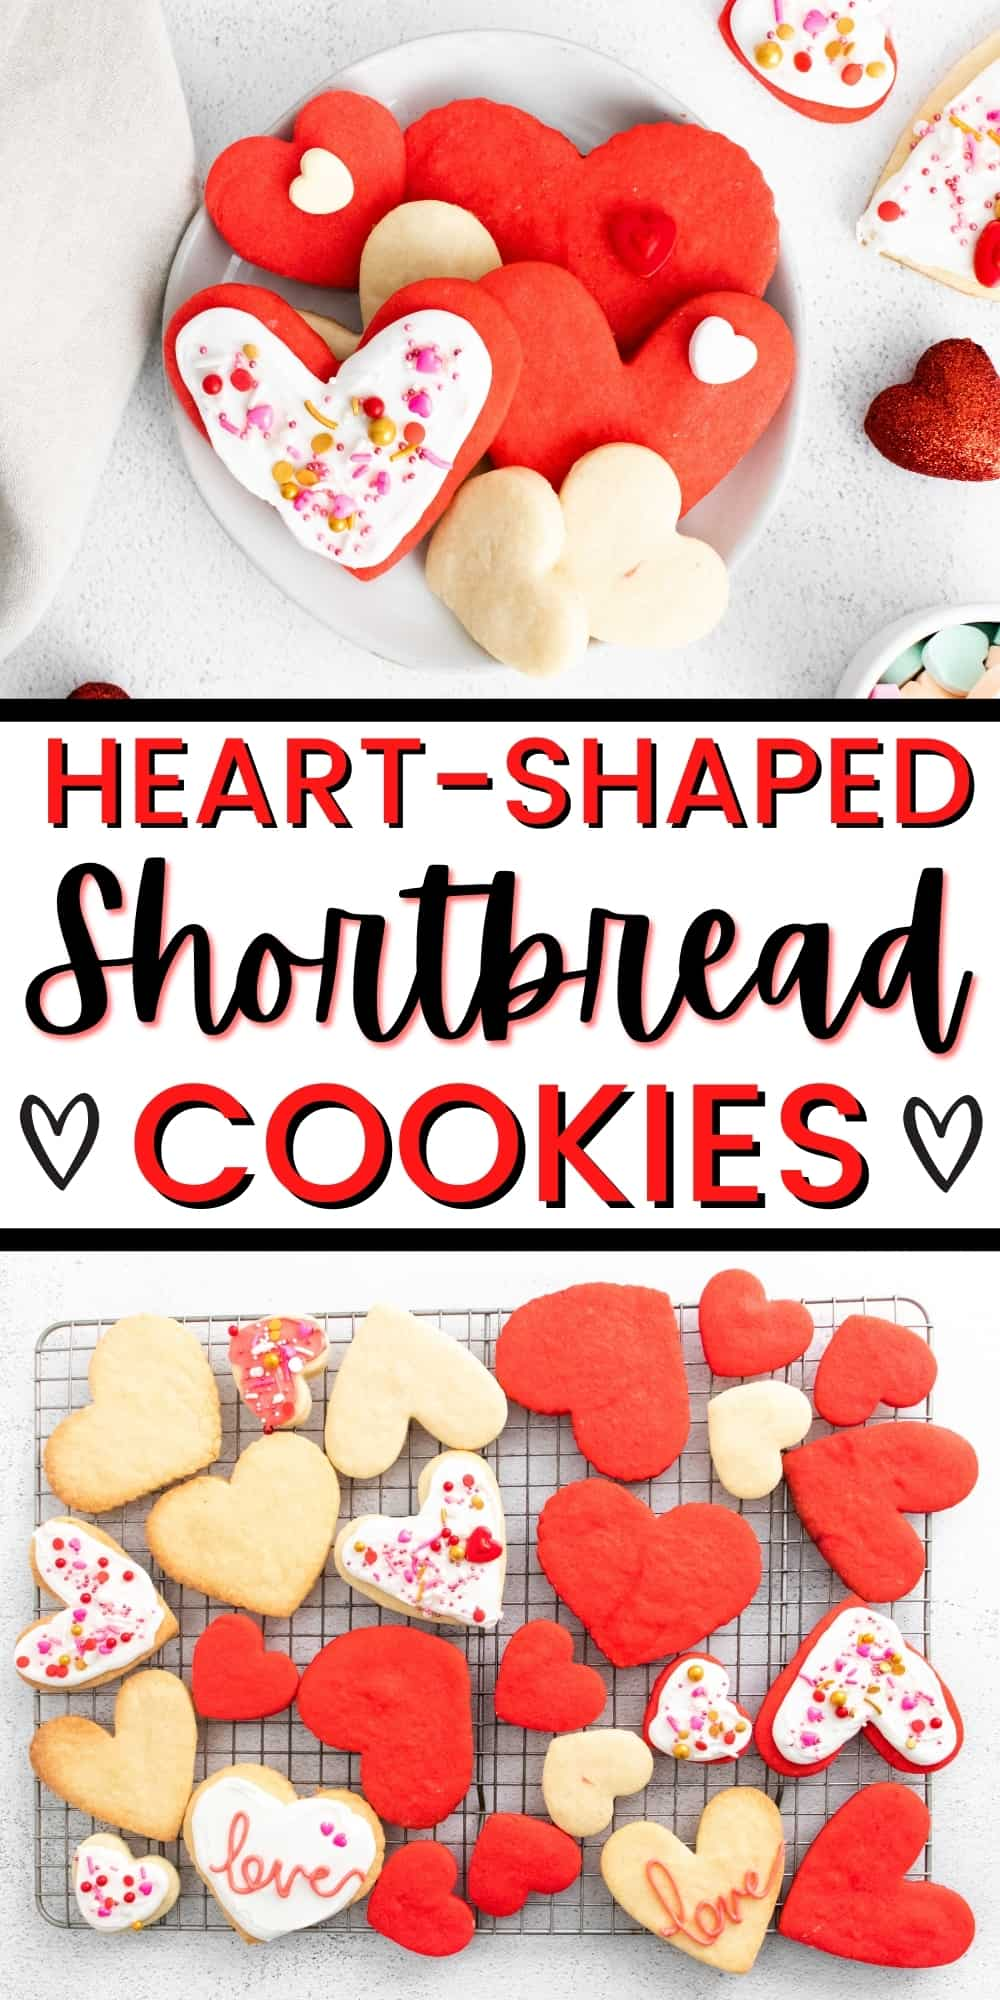 Heart-Shaped Shortbread Cookies